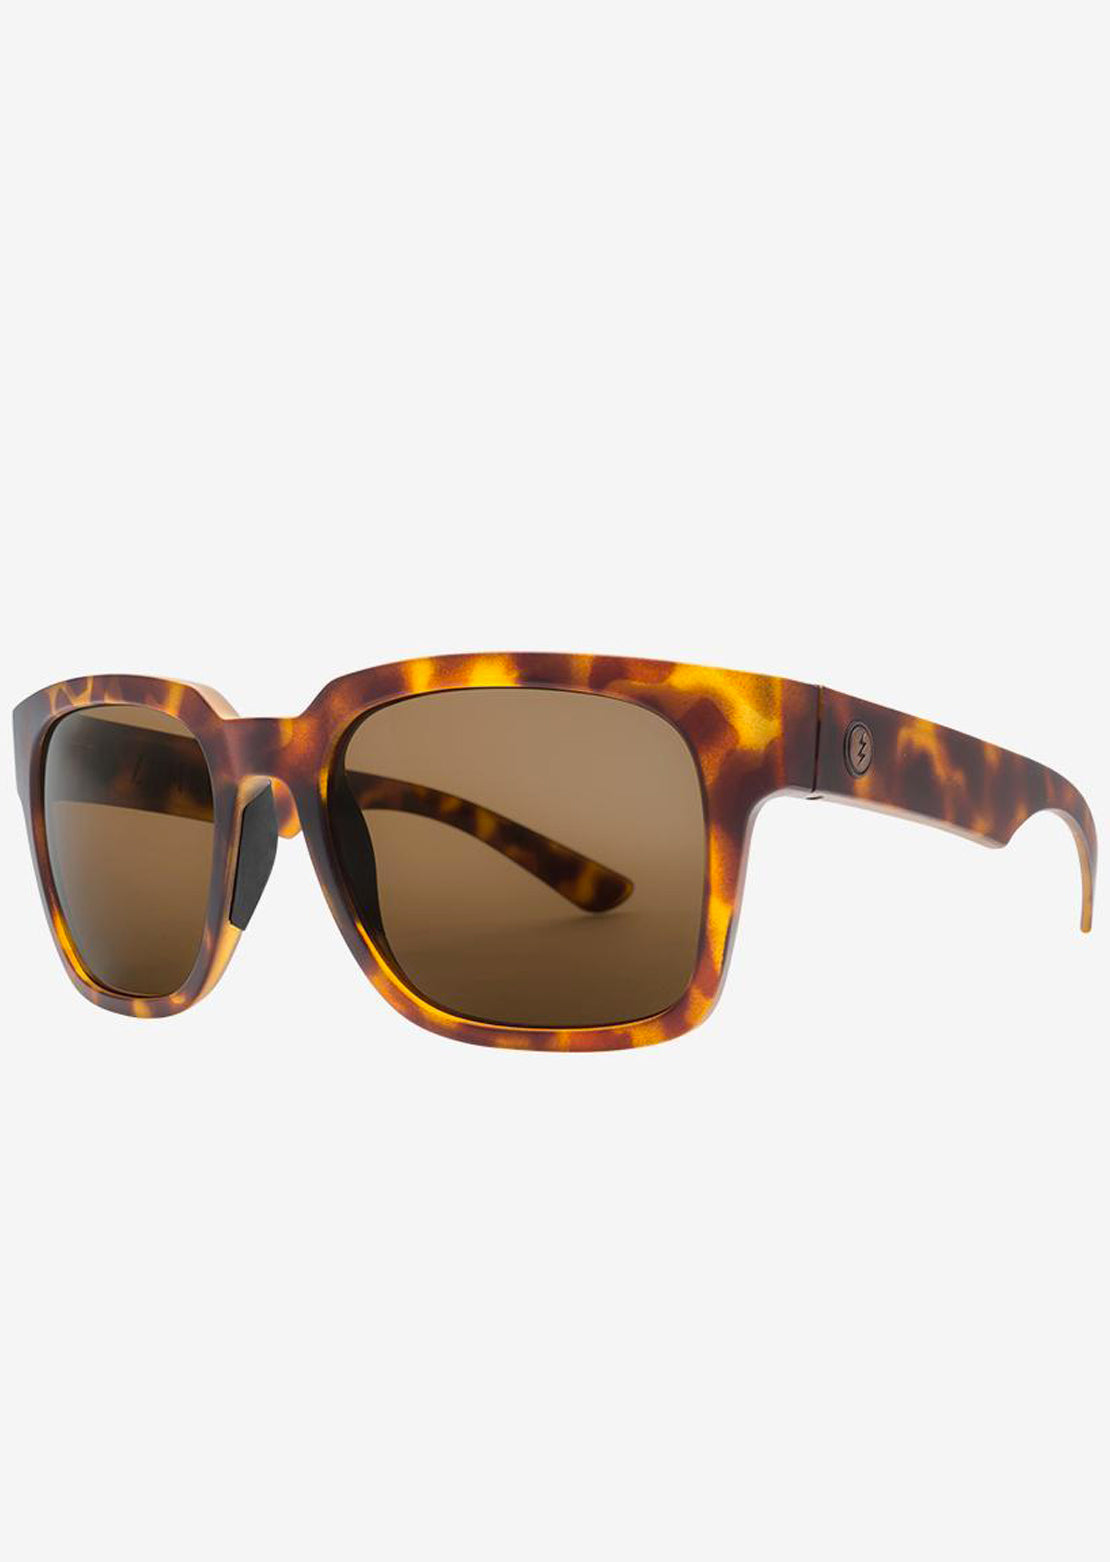 Electric Men's Zombie S Sunglasses Matte Tortoise/Bronze